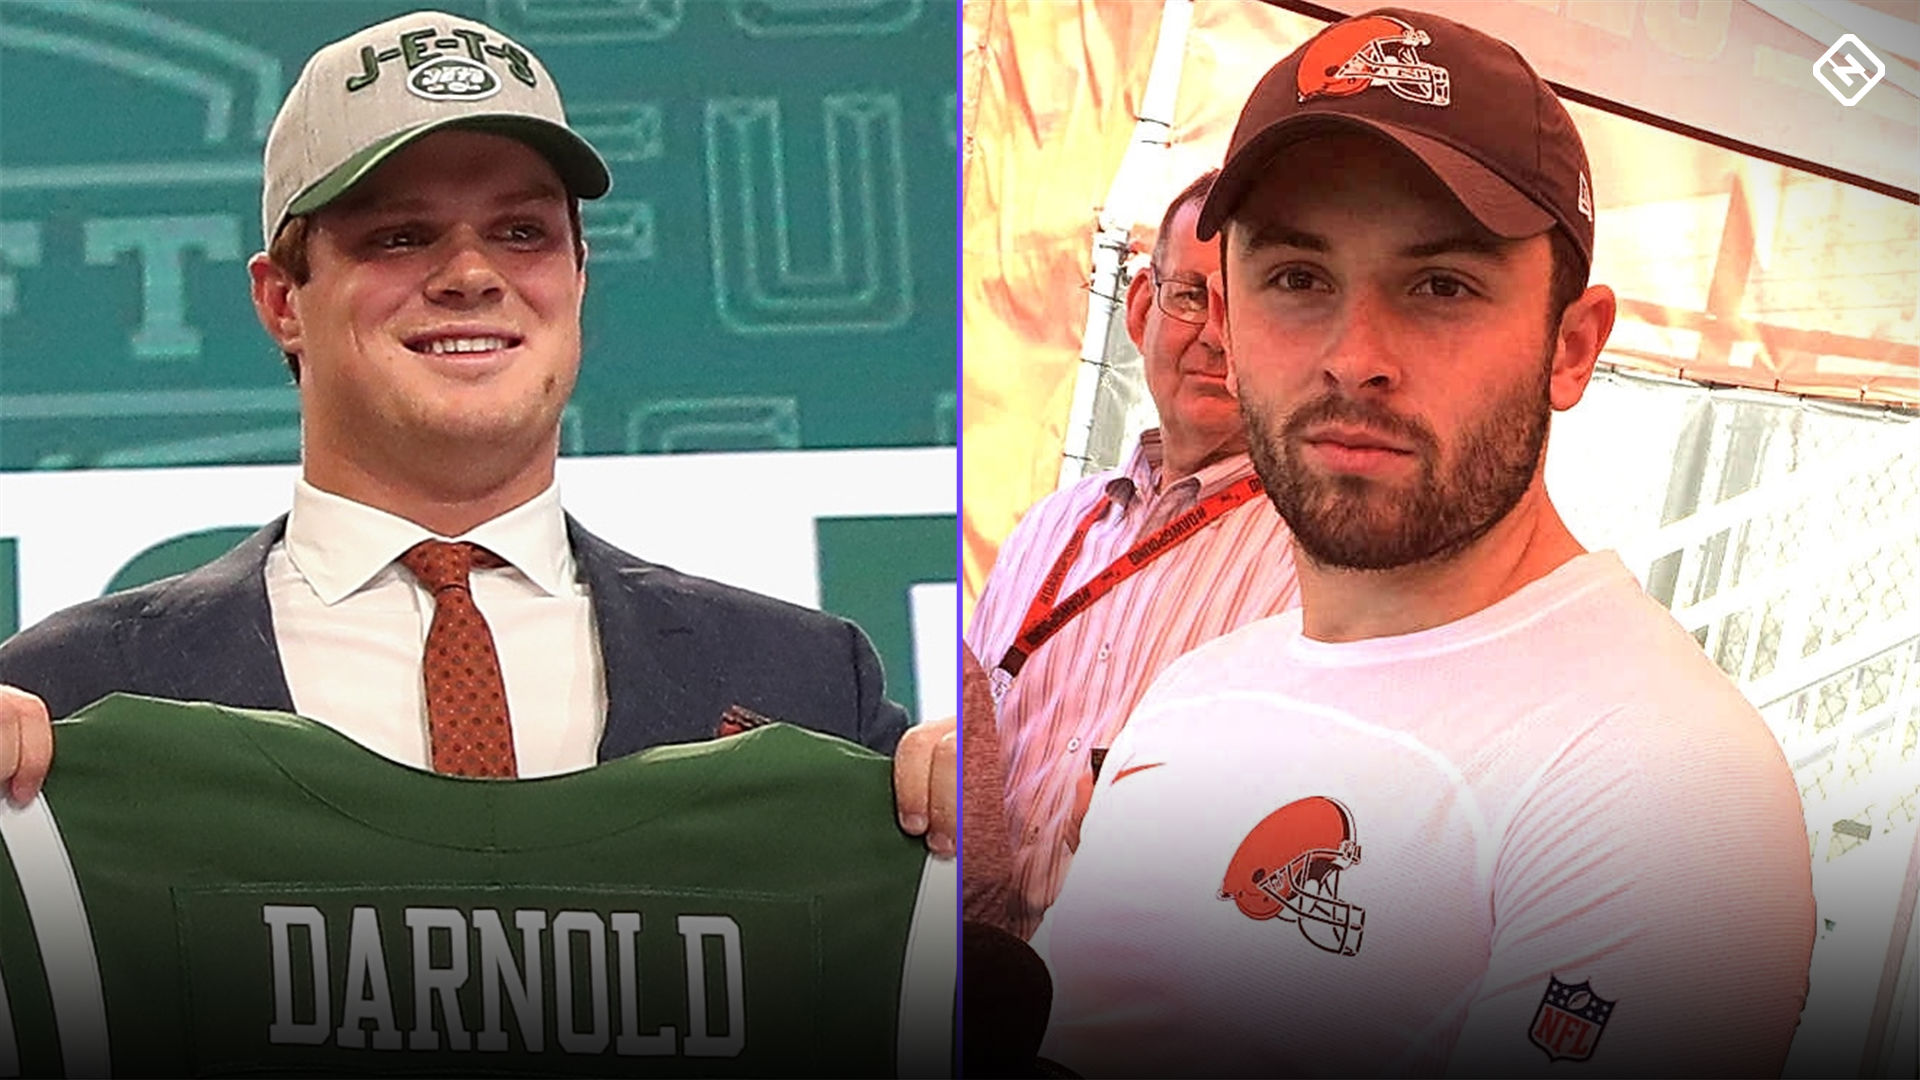 Busting myth that Darnold, Mayfield, other franchise QBs should sit as rookies